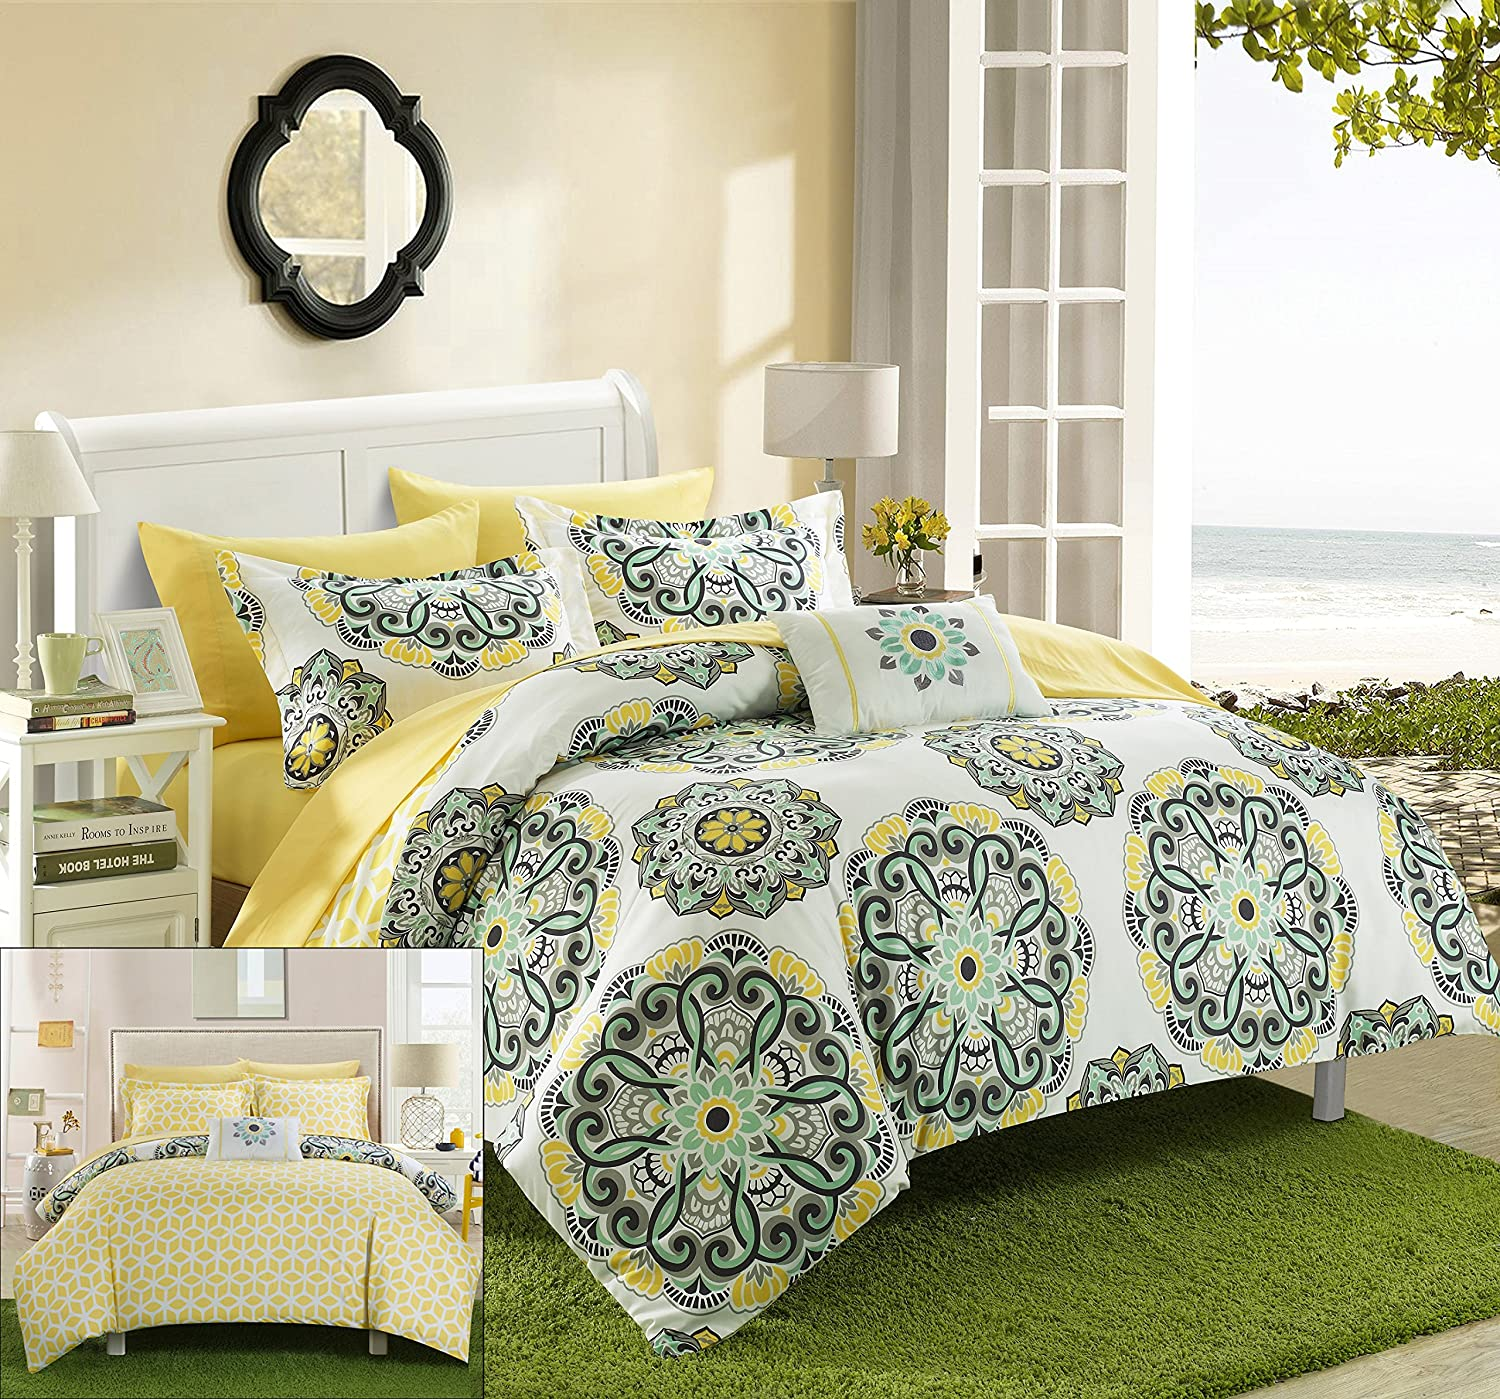 Geometric Backing Bed in a Bag Comforter Set with Sheet, Full/Queen, Yellow